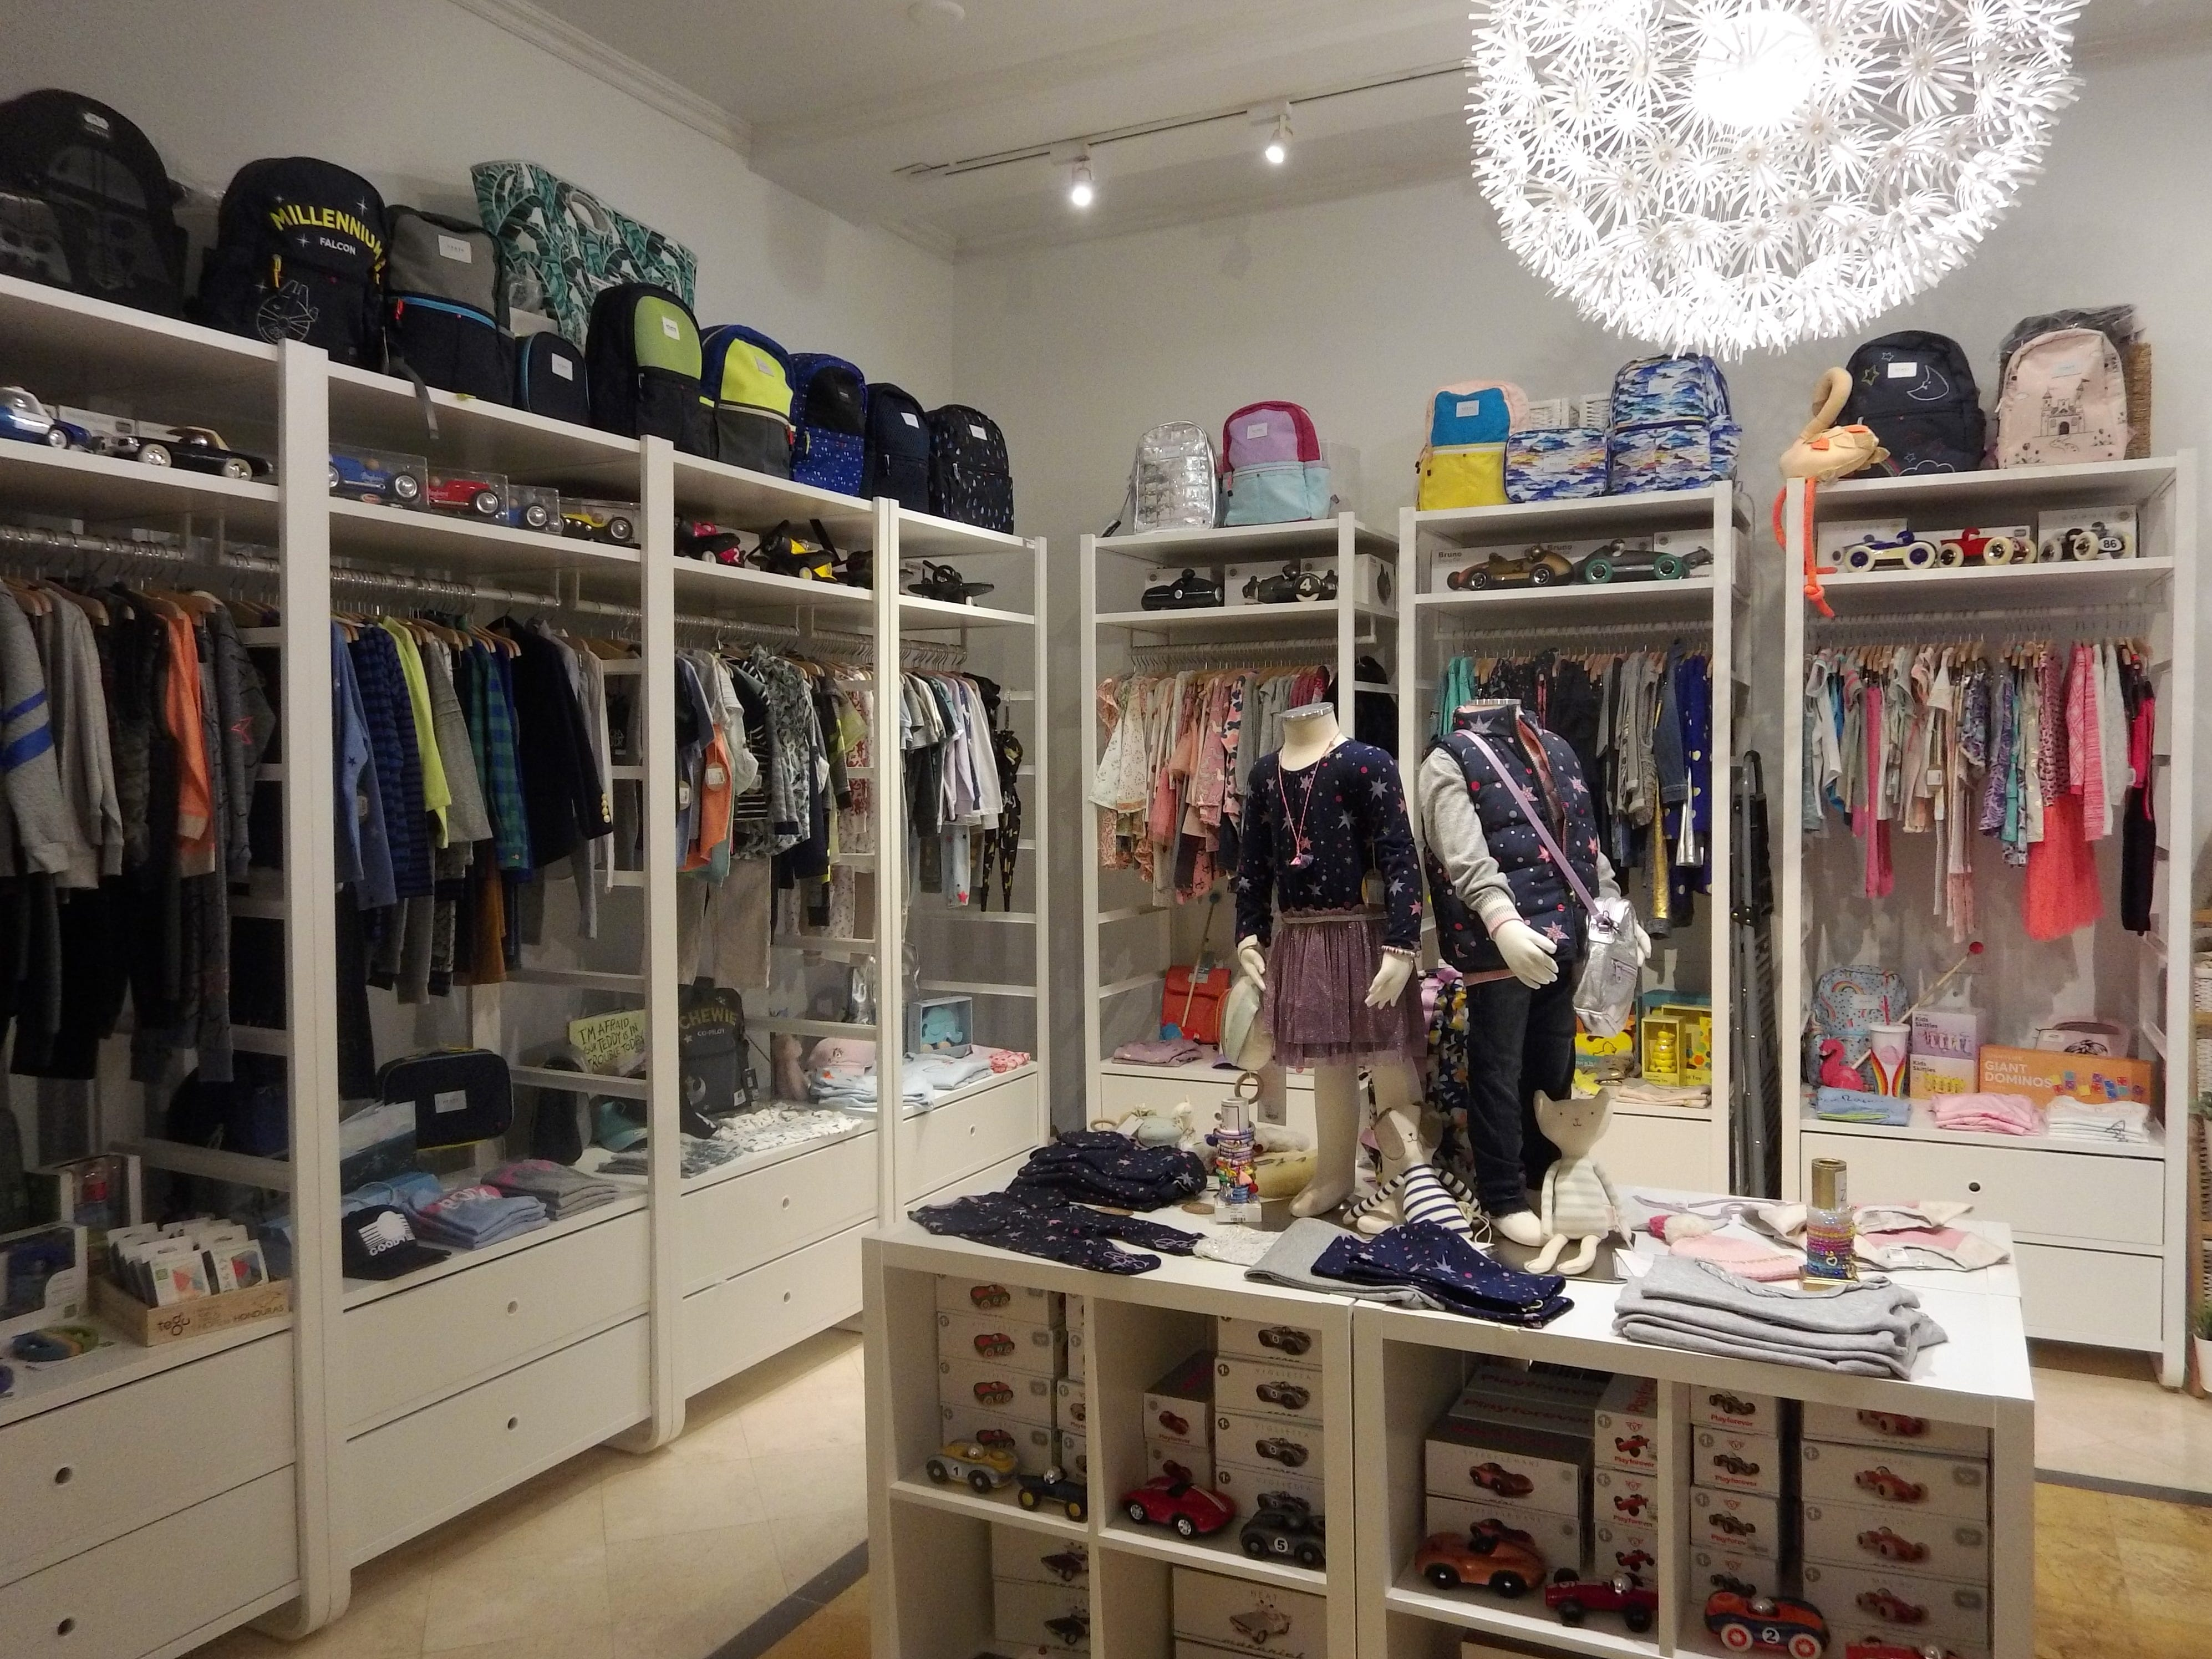 Egg & Friends is an upscale children's boutique found within Boca Raton Resort & Club.